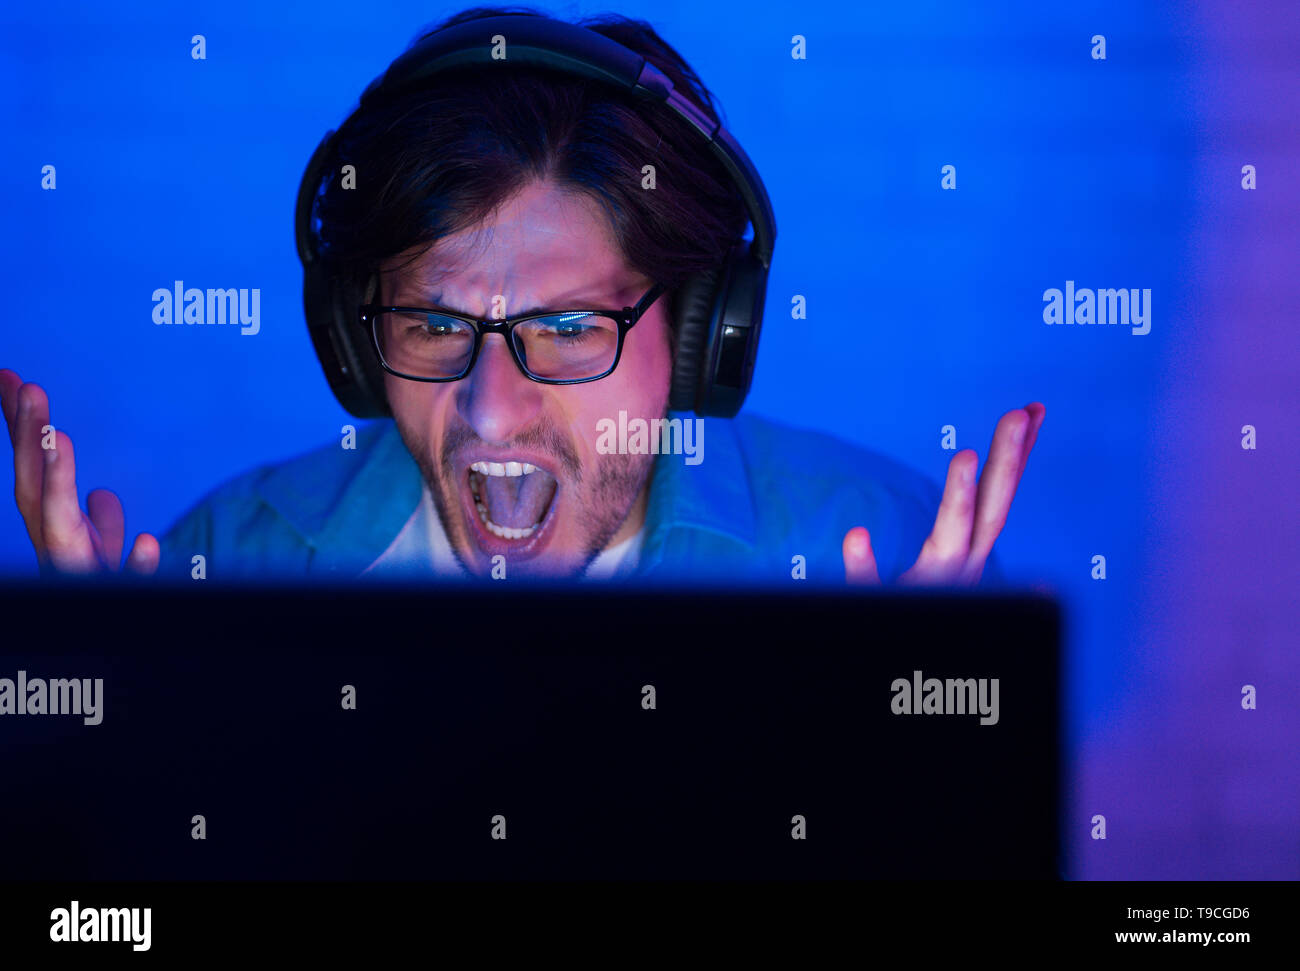 Lost Game. Angry Gamer Or Streamer Playing Online - Stock Image